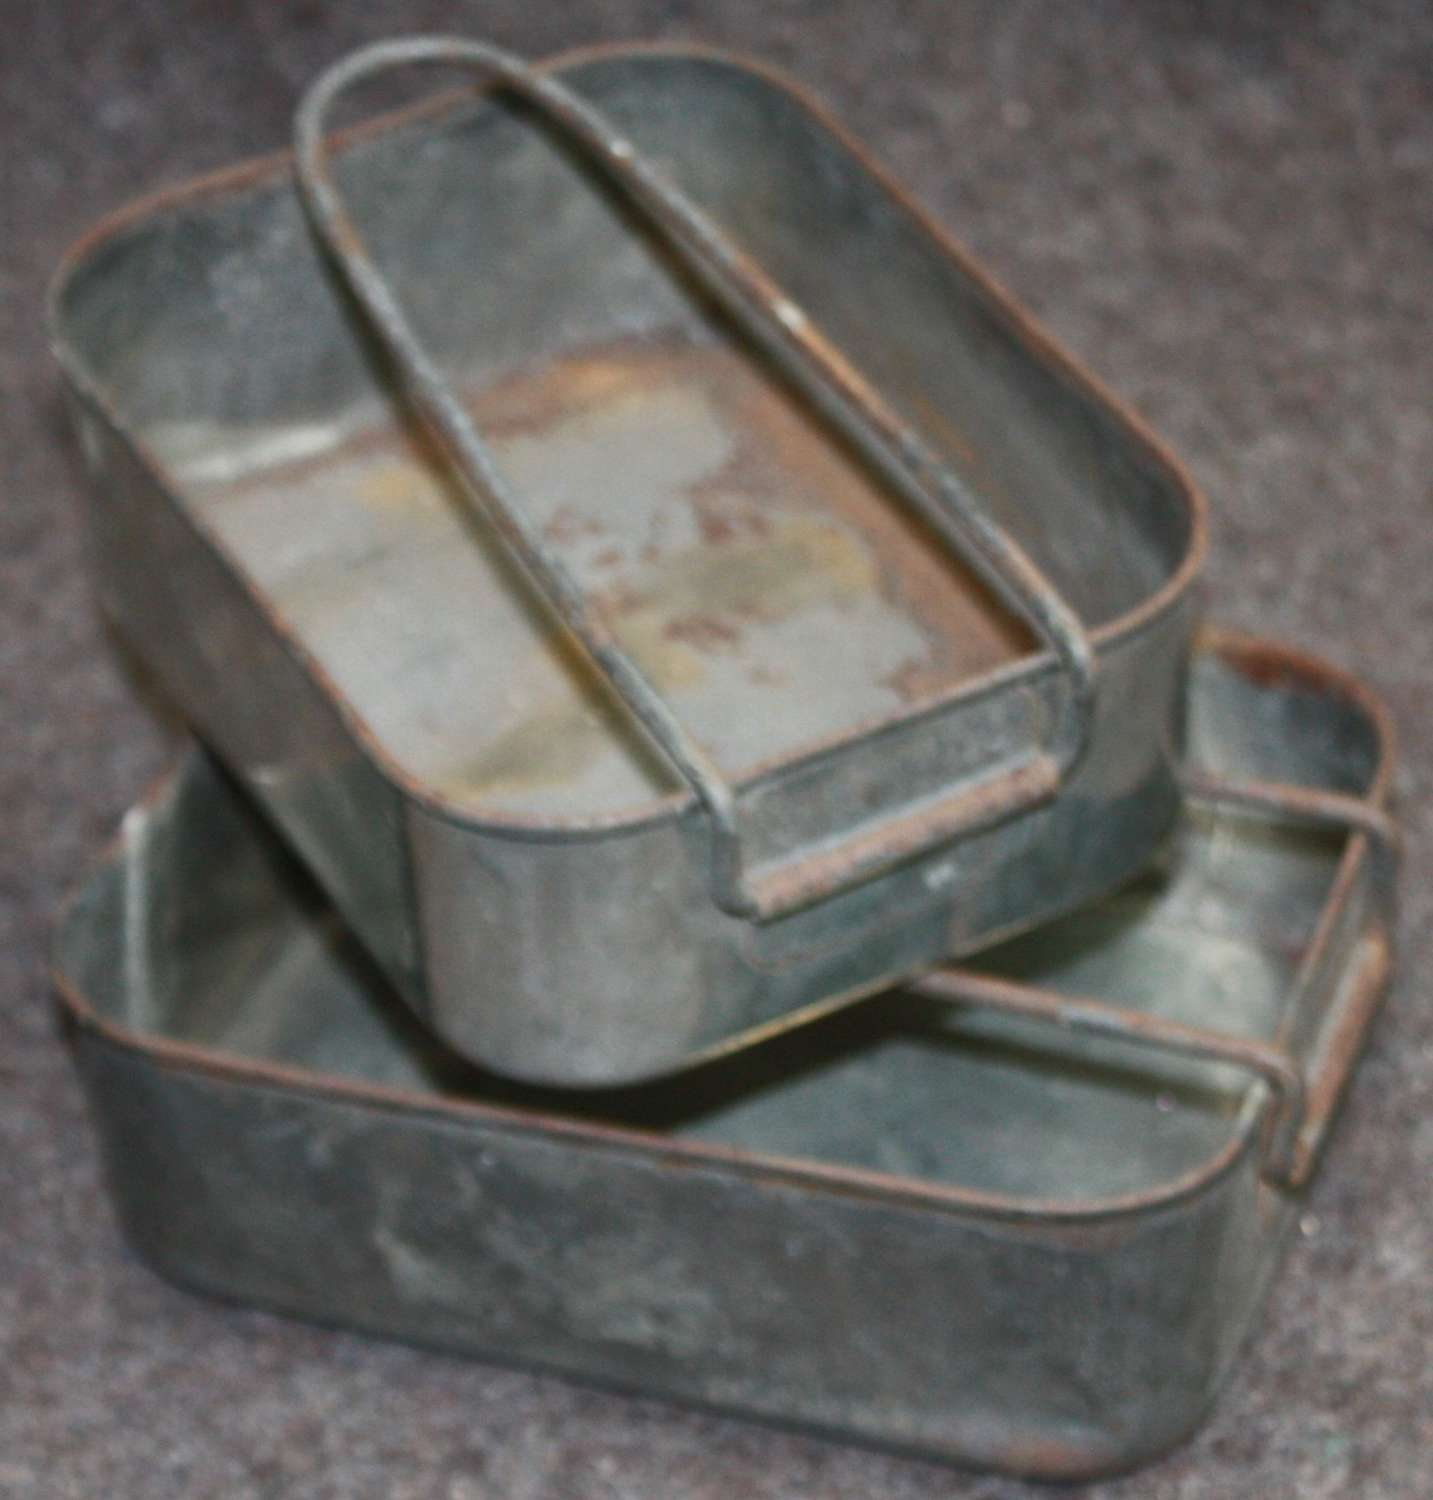 A PAIR OF WWII SOUTH AFRICAN MESS TINS